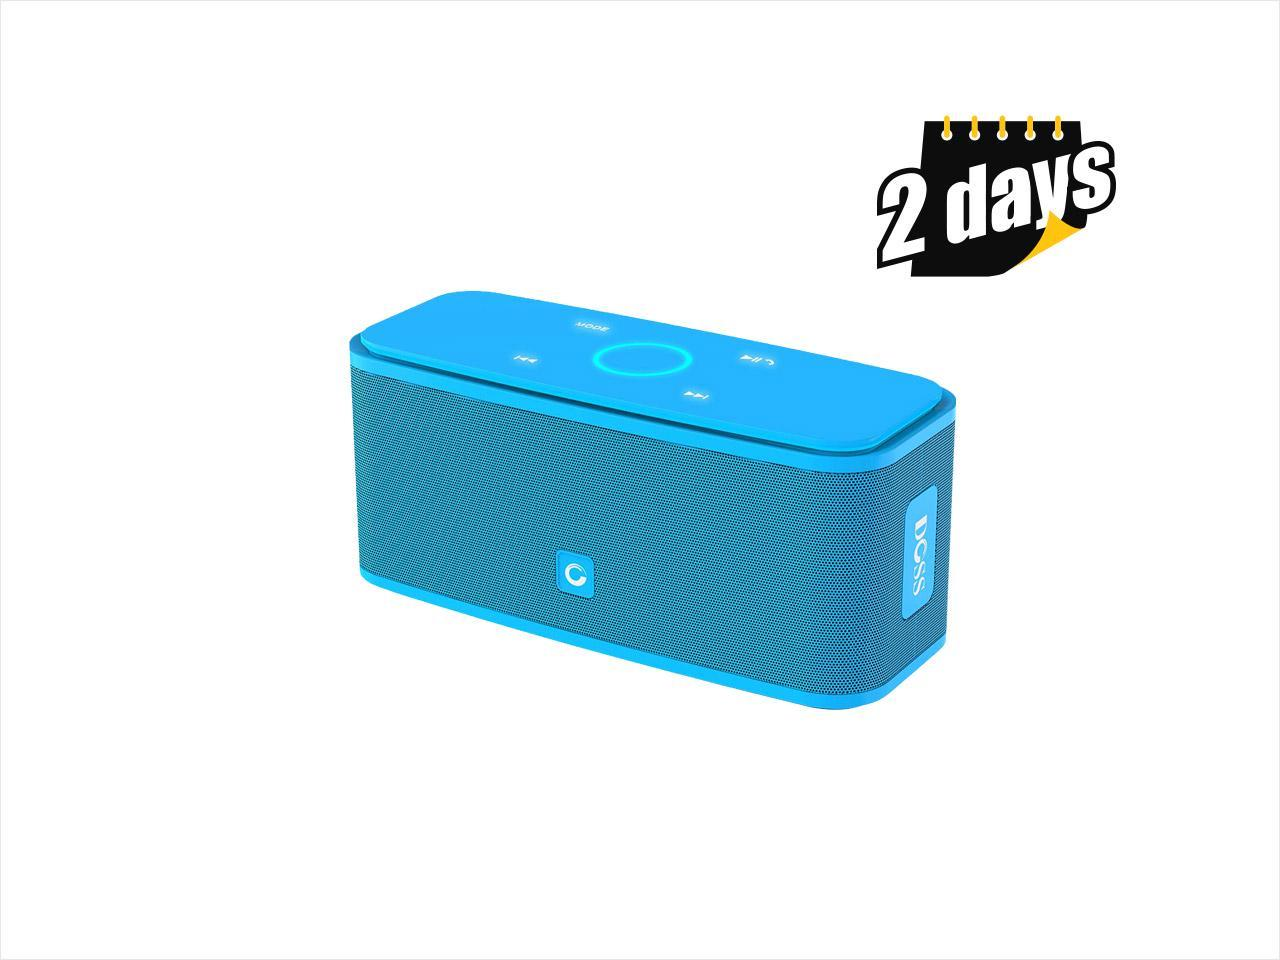 DOSS SoundBox Bluetooth Speaker, Portable Wireless Bluetooth 4.0 Touch Speakers with 12W HD Sound and Bold Bass, Handsfree, 12H playtime for Echo Dot, iPhone, iPad, Samsung, tablet, Gift ideas[Blue]